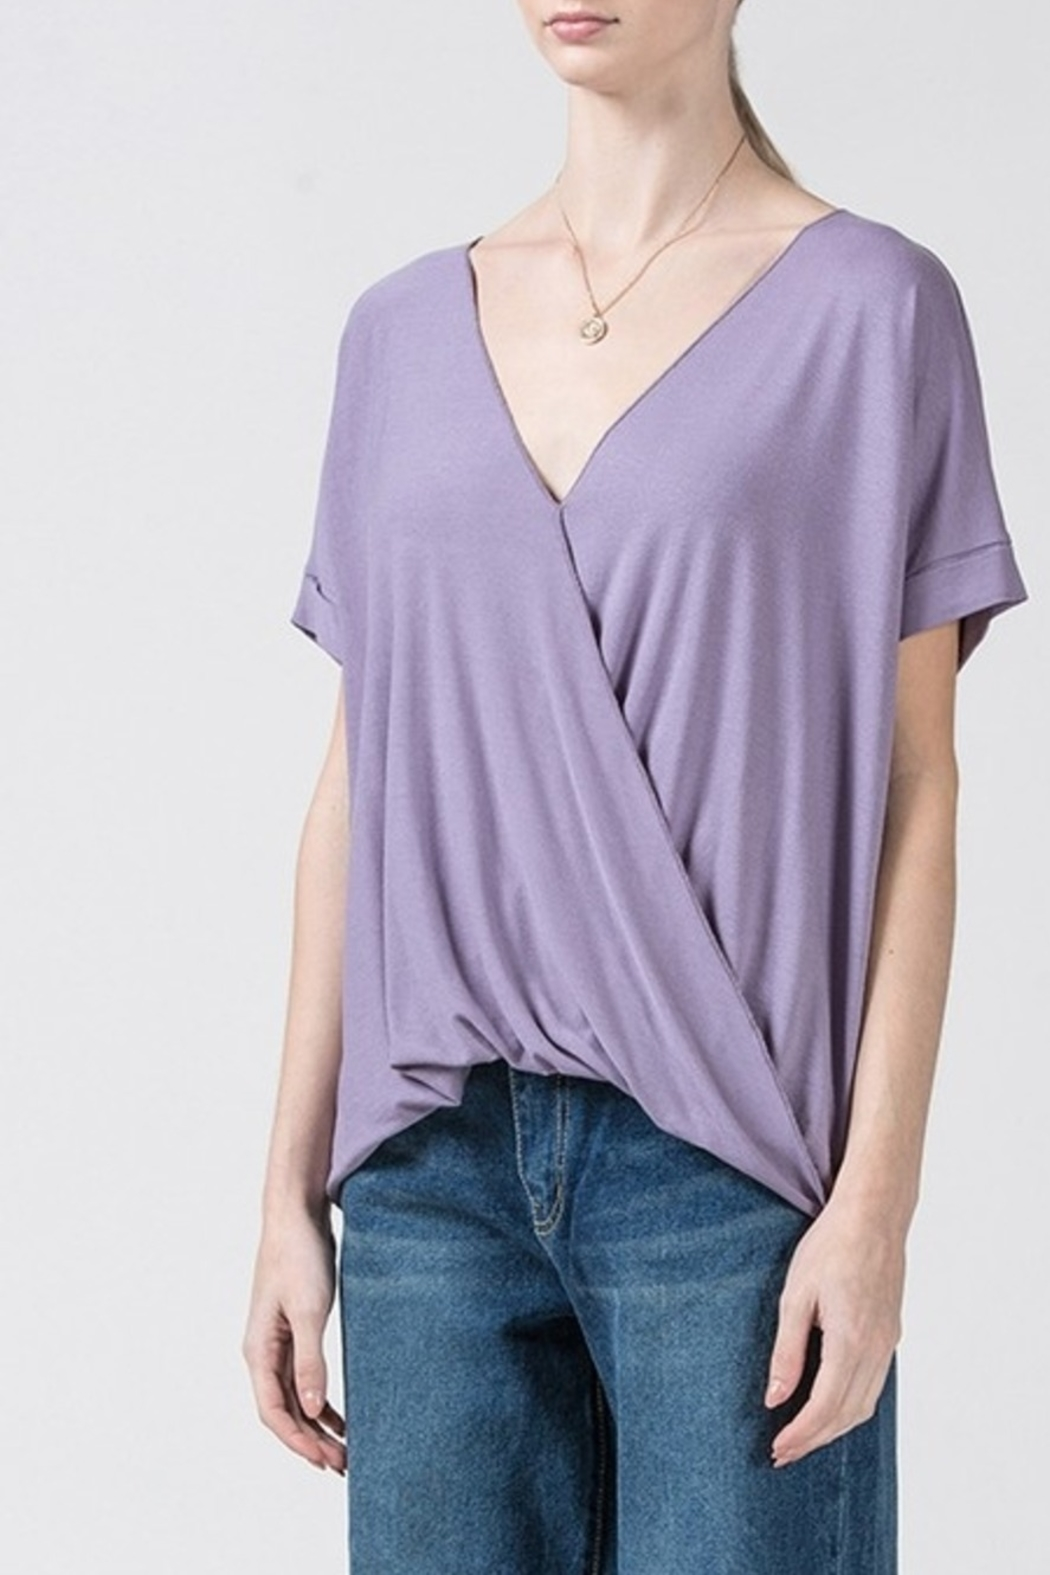 c56c6878e6f1 Double Zero Vacay Style top from Mississippi by Exit 16 ...